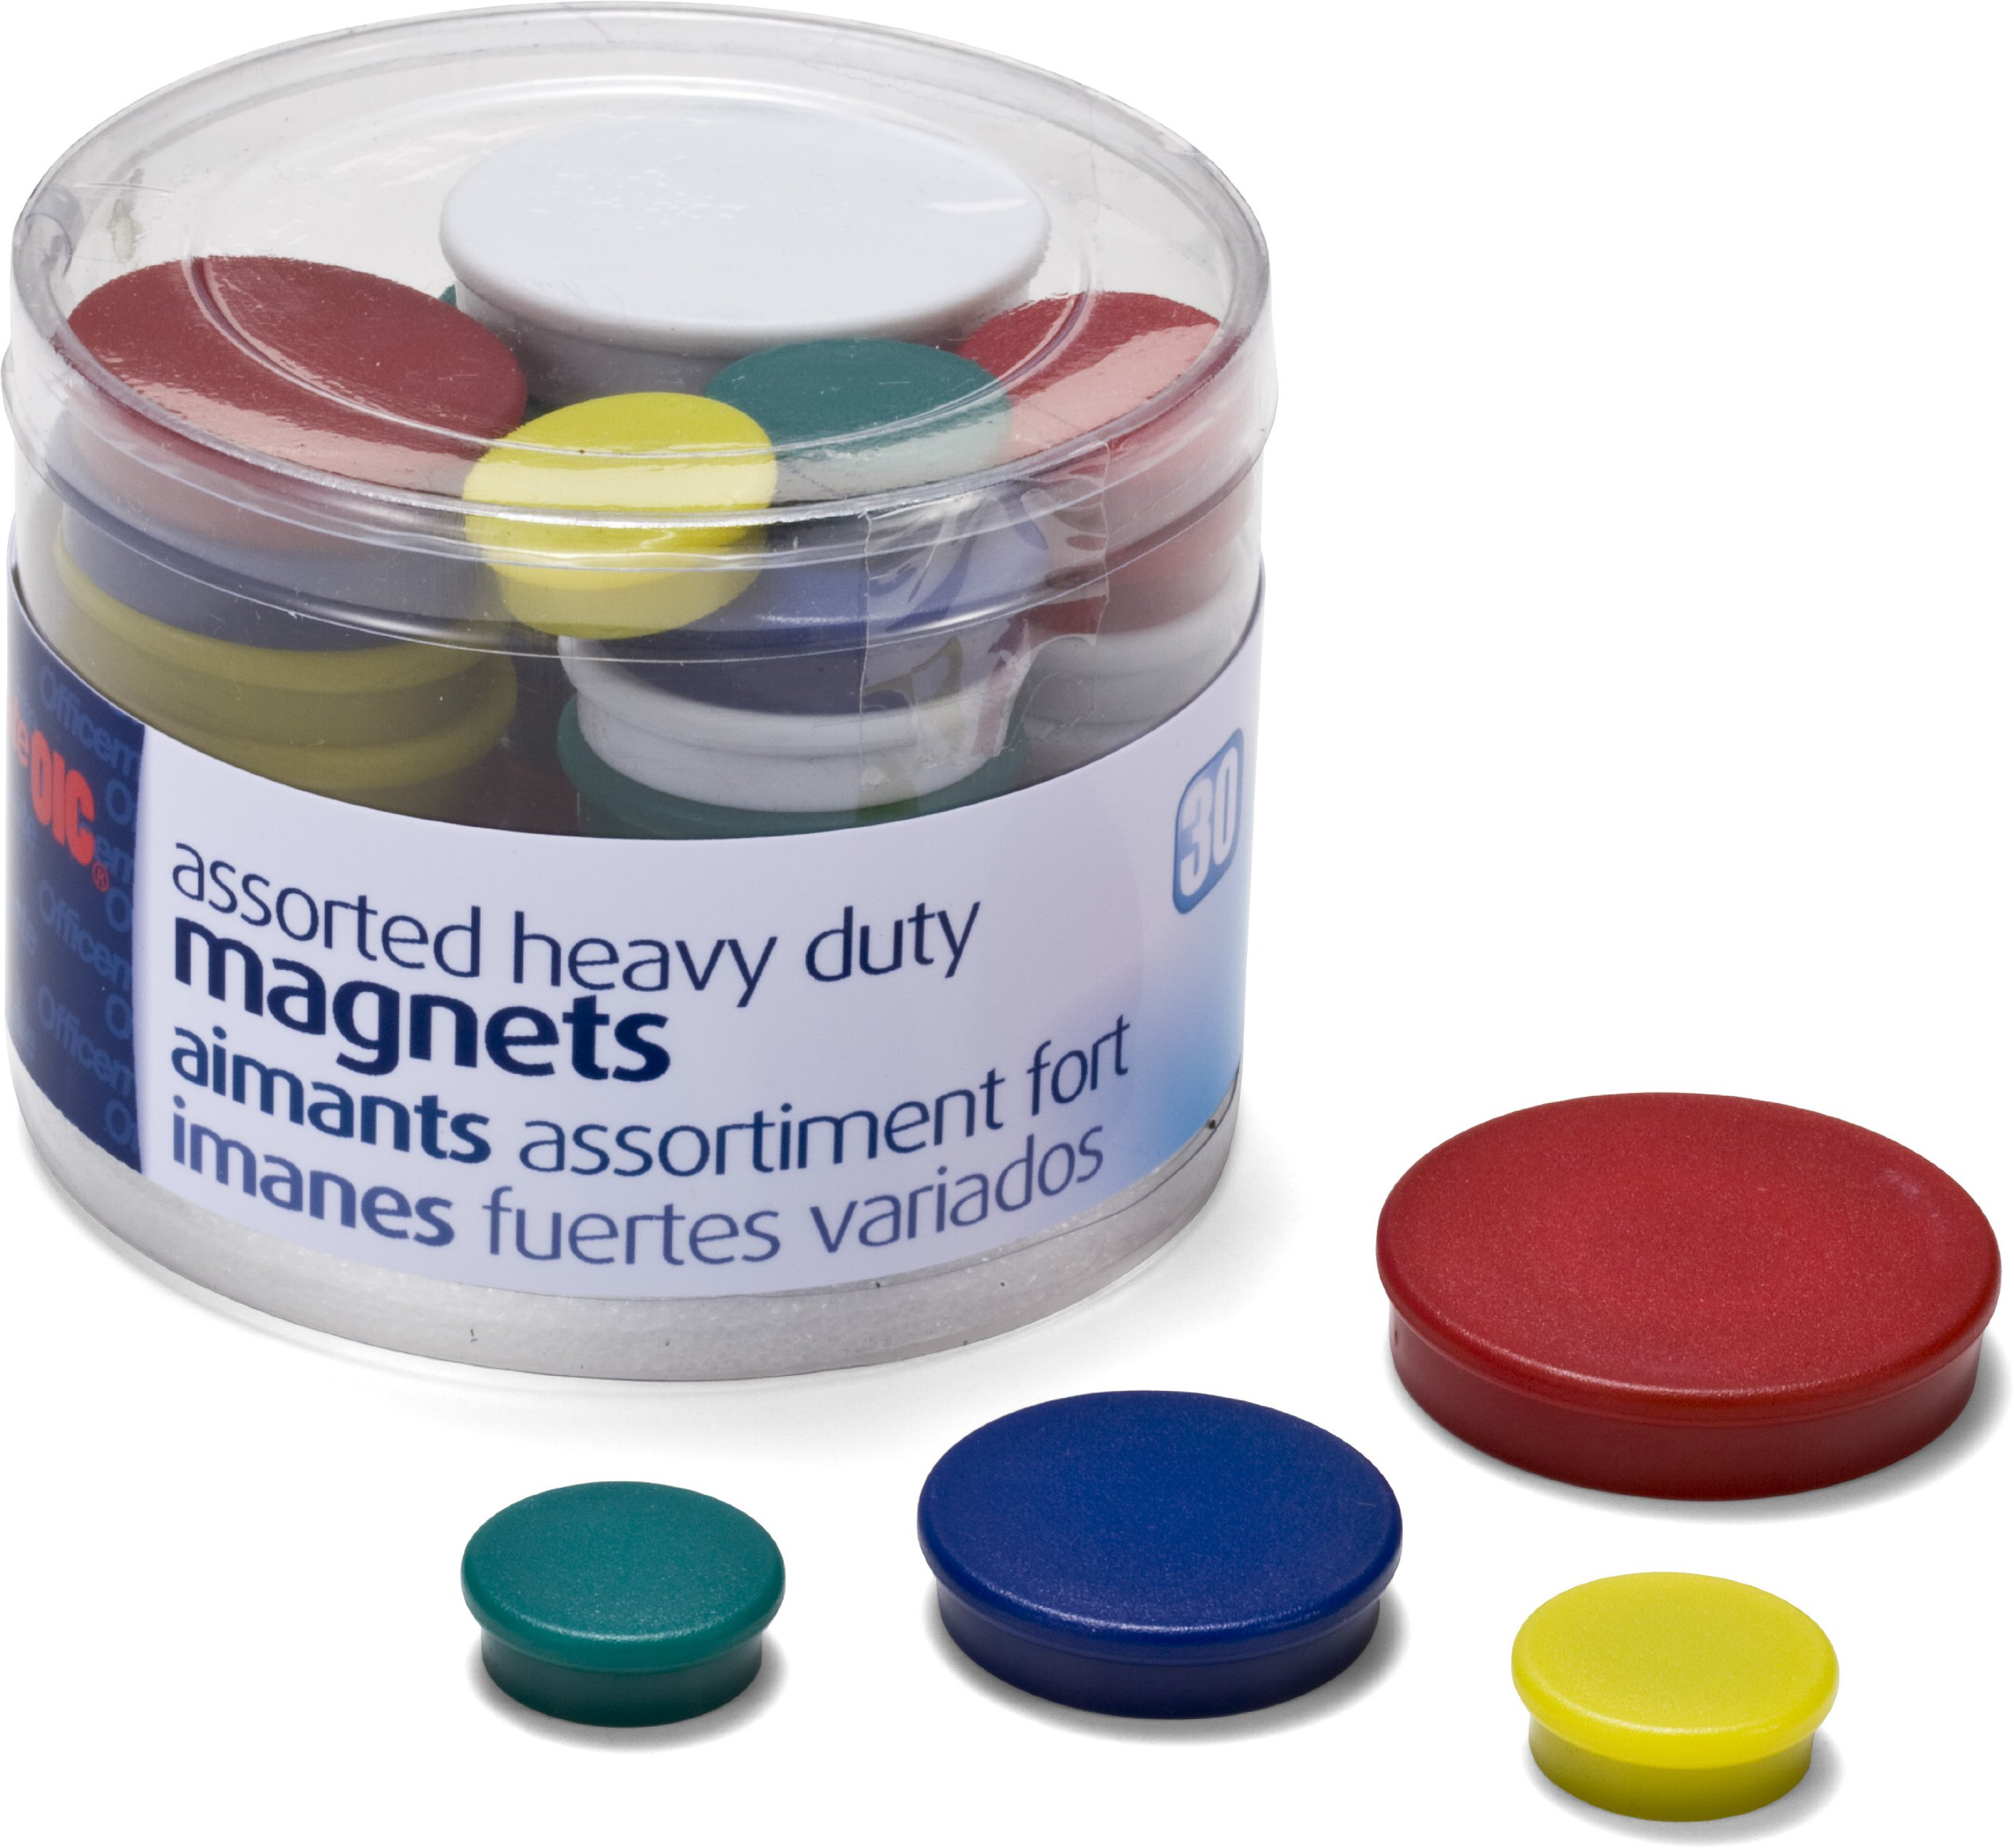 Officemate Assorted Heavy-Duty Magnets, Circles, Assorted Sizes & Colors, 30/Tub (92501) by Officemate